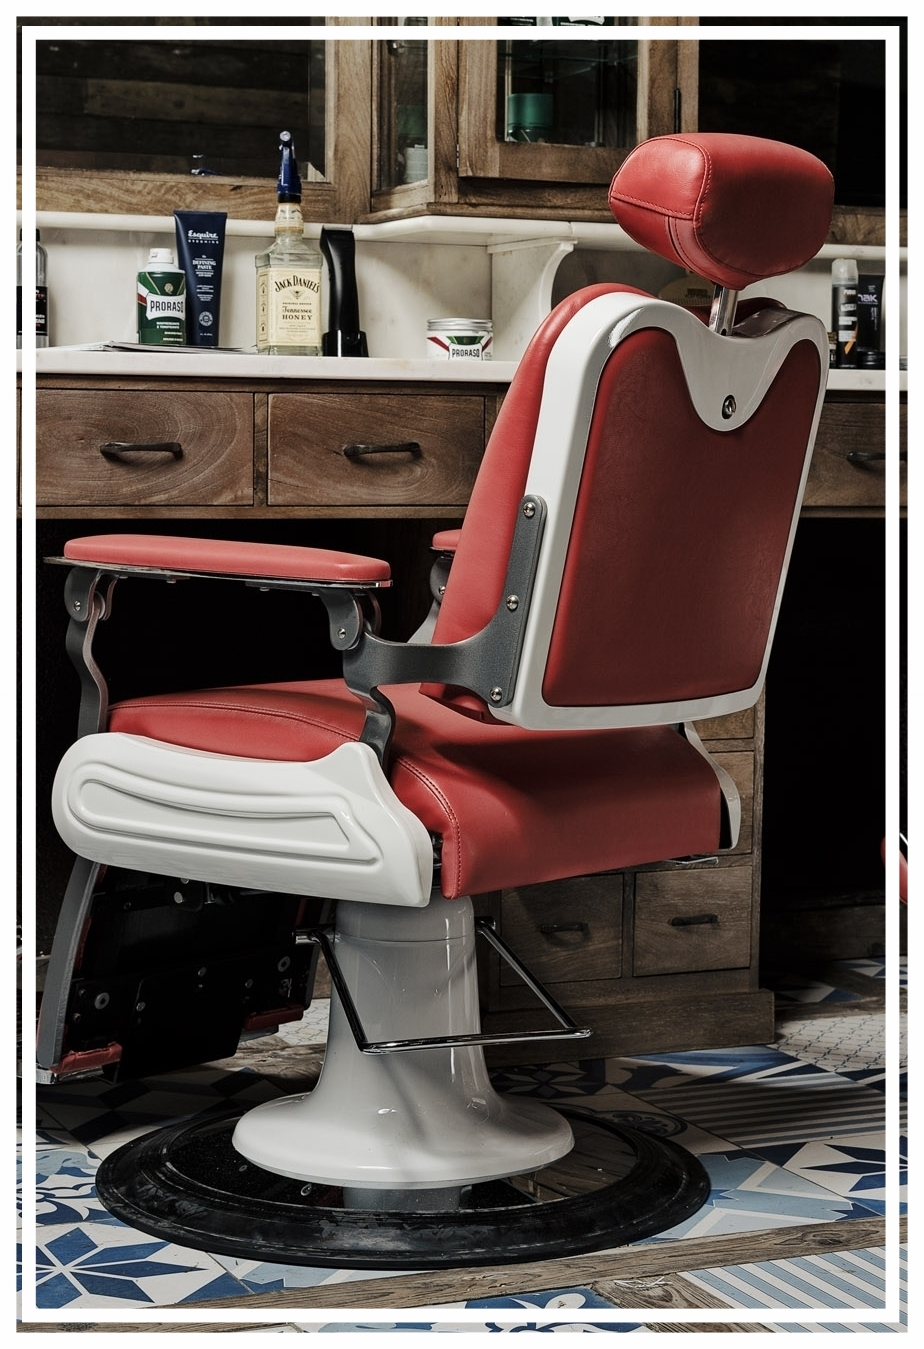 Barber Shop Chairs For Sale | | Barber shop